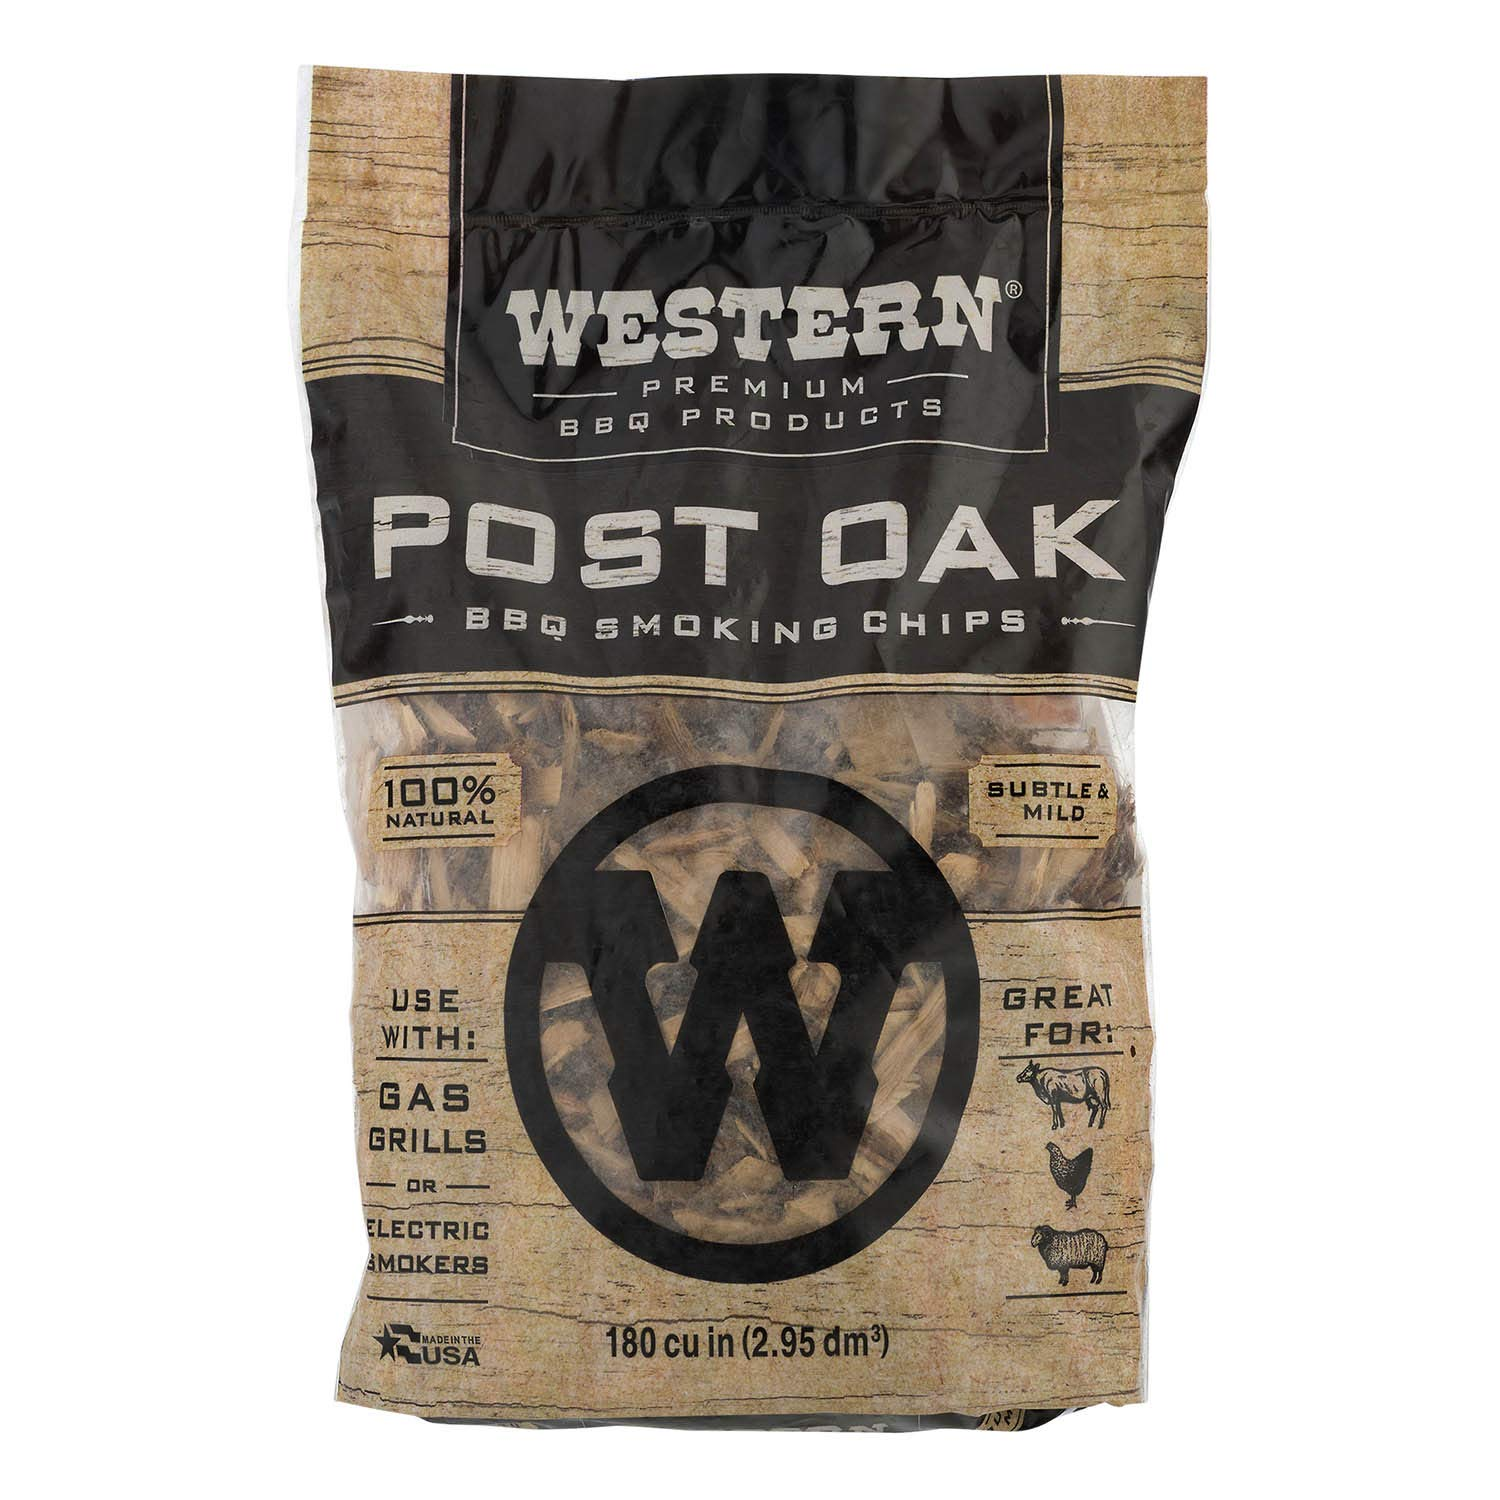 WESTERN 78057 Premium BBQ Products Post Oak Cooking Chunks, 570 cu inch Food